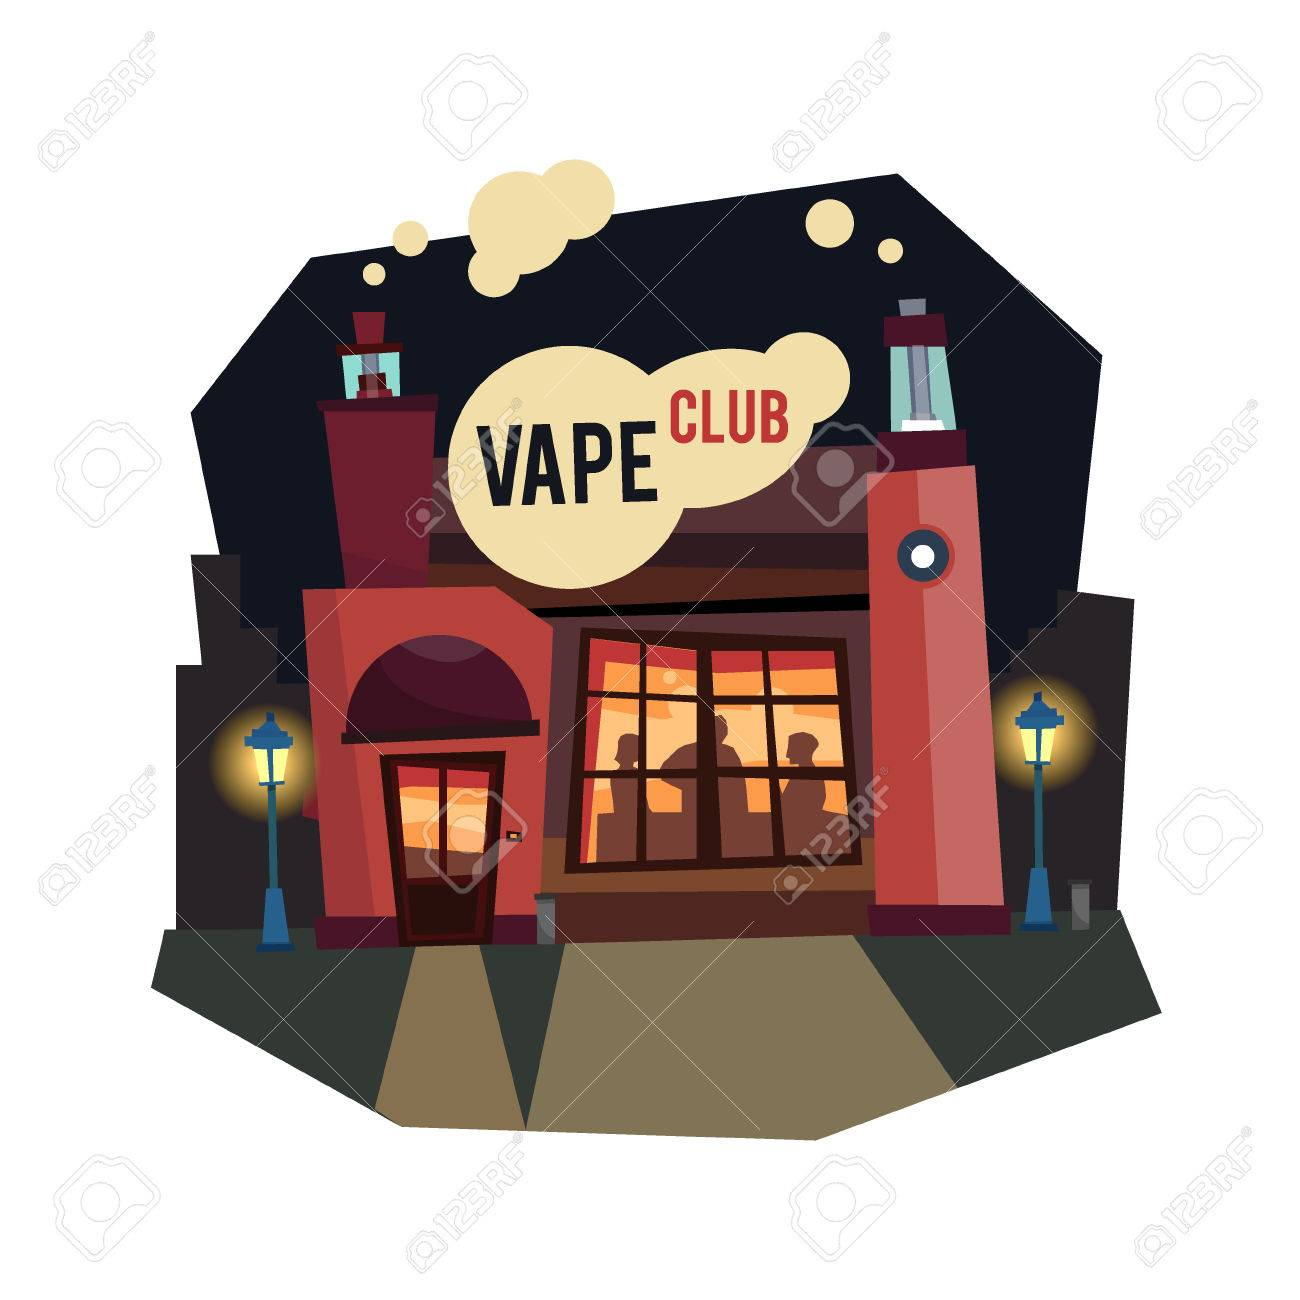 Vape club electronic cigarettes flat style with a cloud of steam